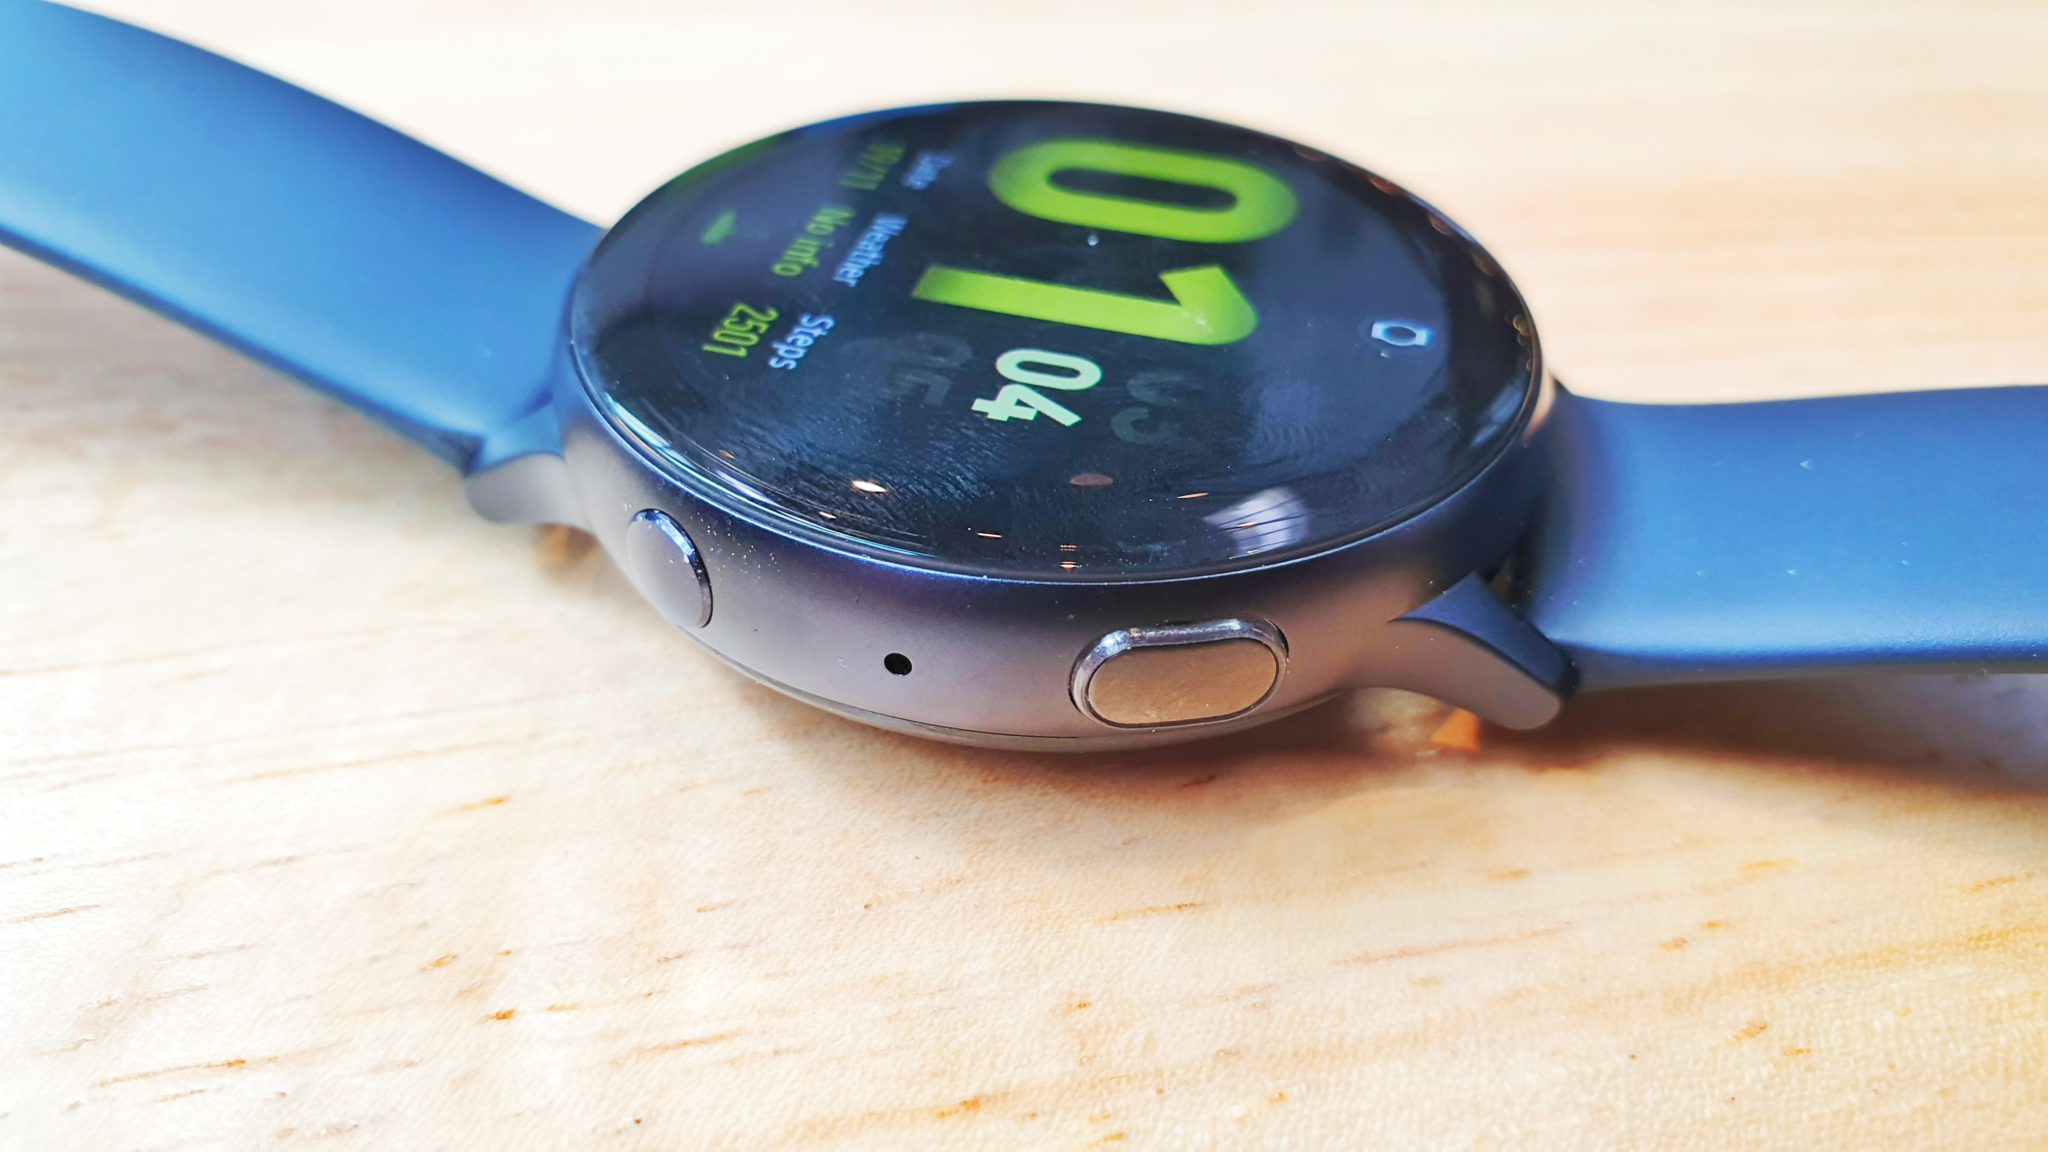 Watch Active2 side